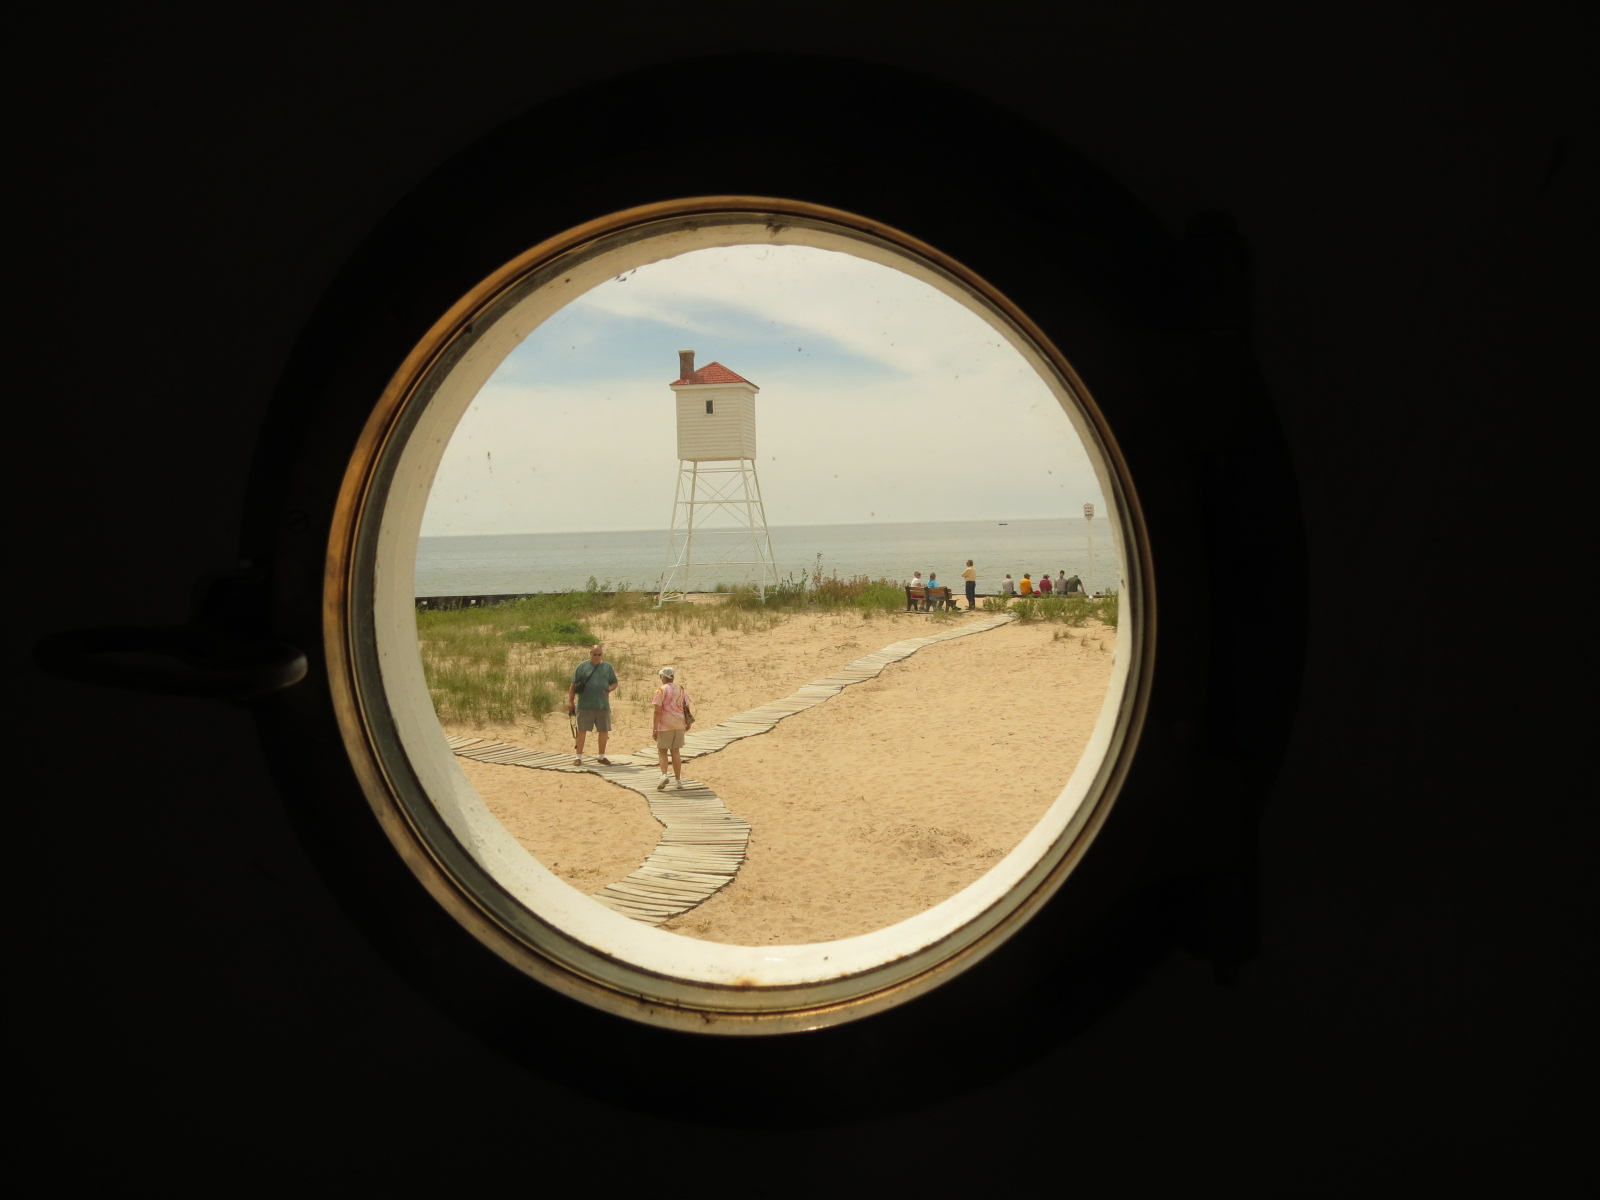 Looking out a lighthouse window